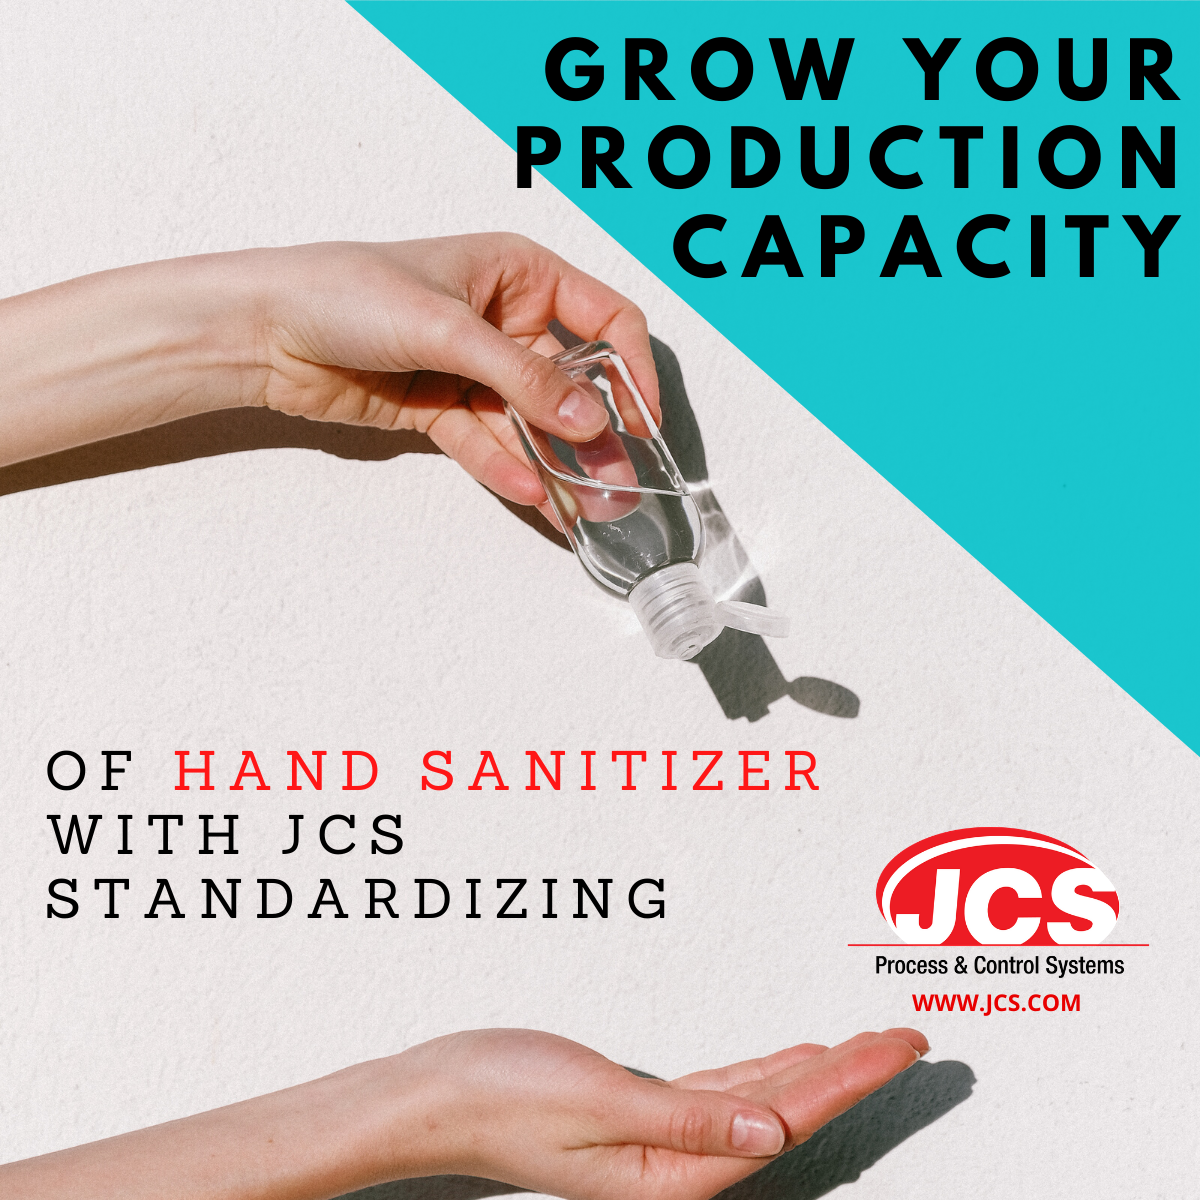 JCS Standardizing for hand sanitizer production